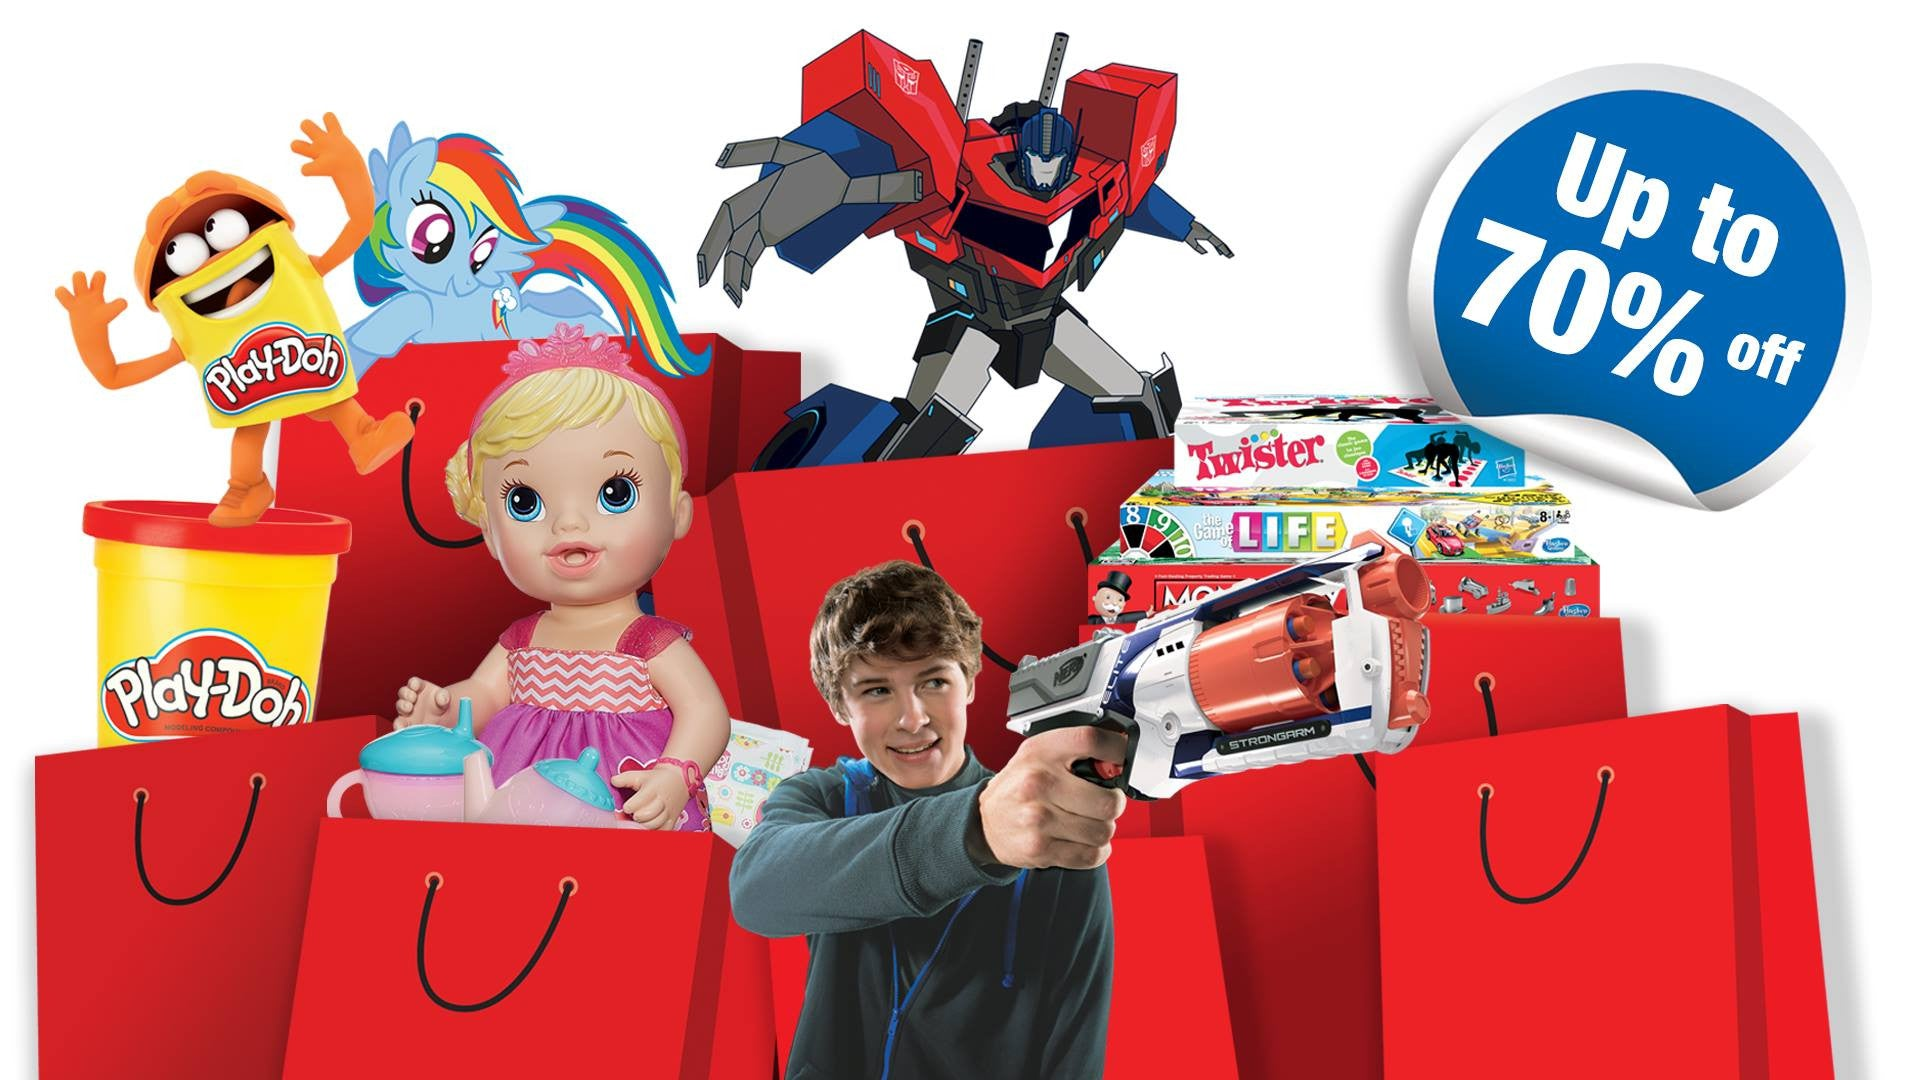 Things to do this Weekend - Xmas Shopping @ Hasbro Warehouse Sale!